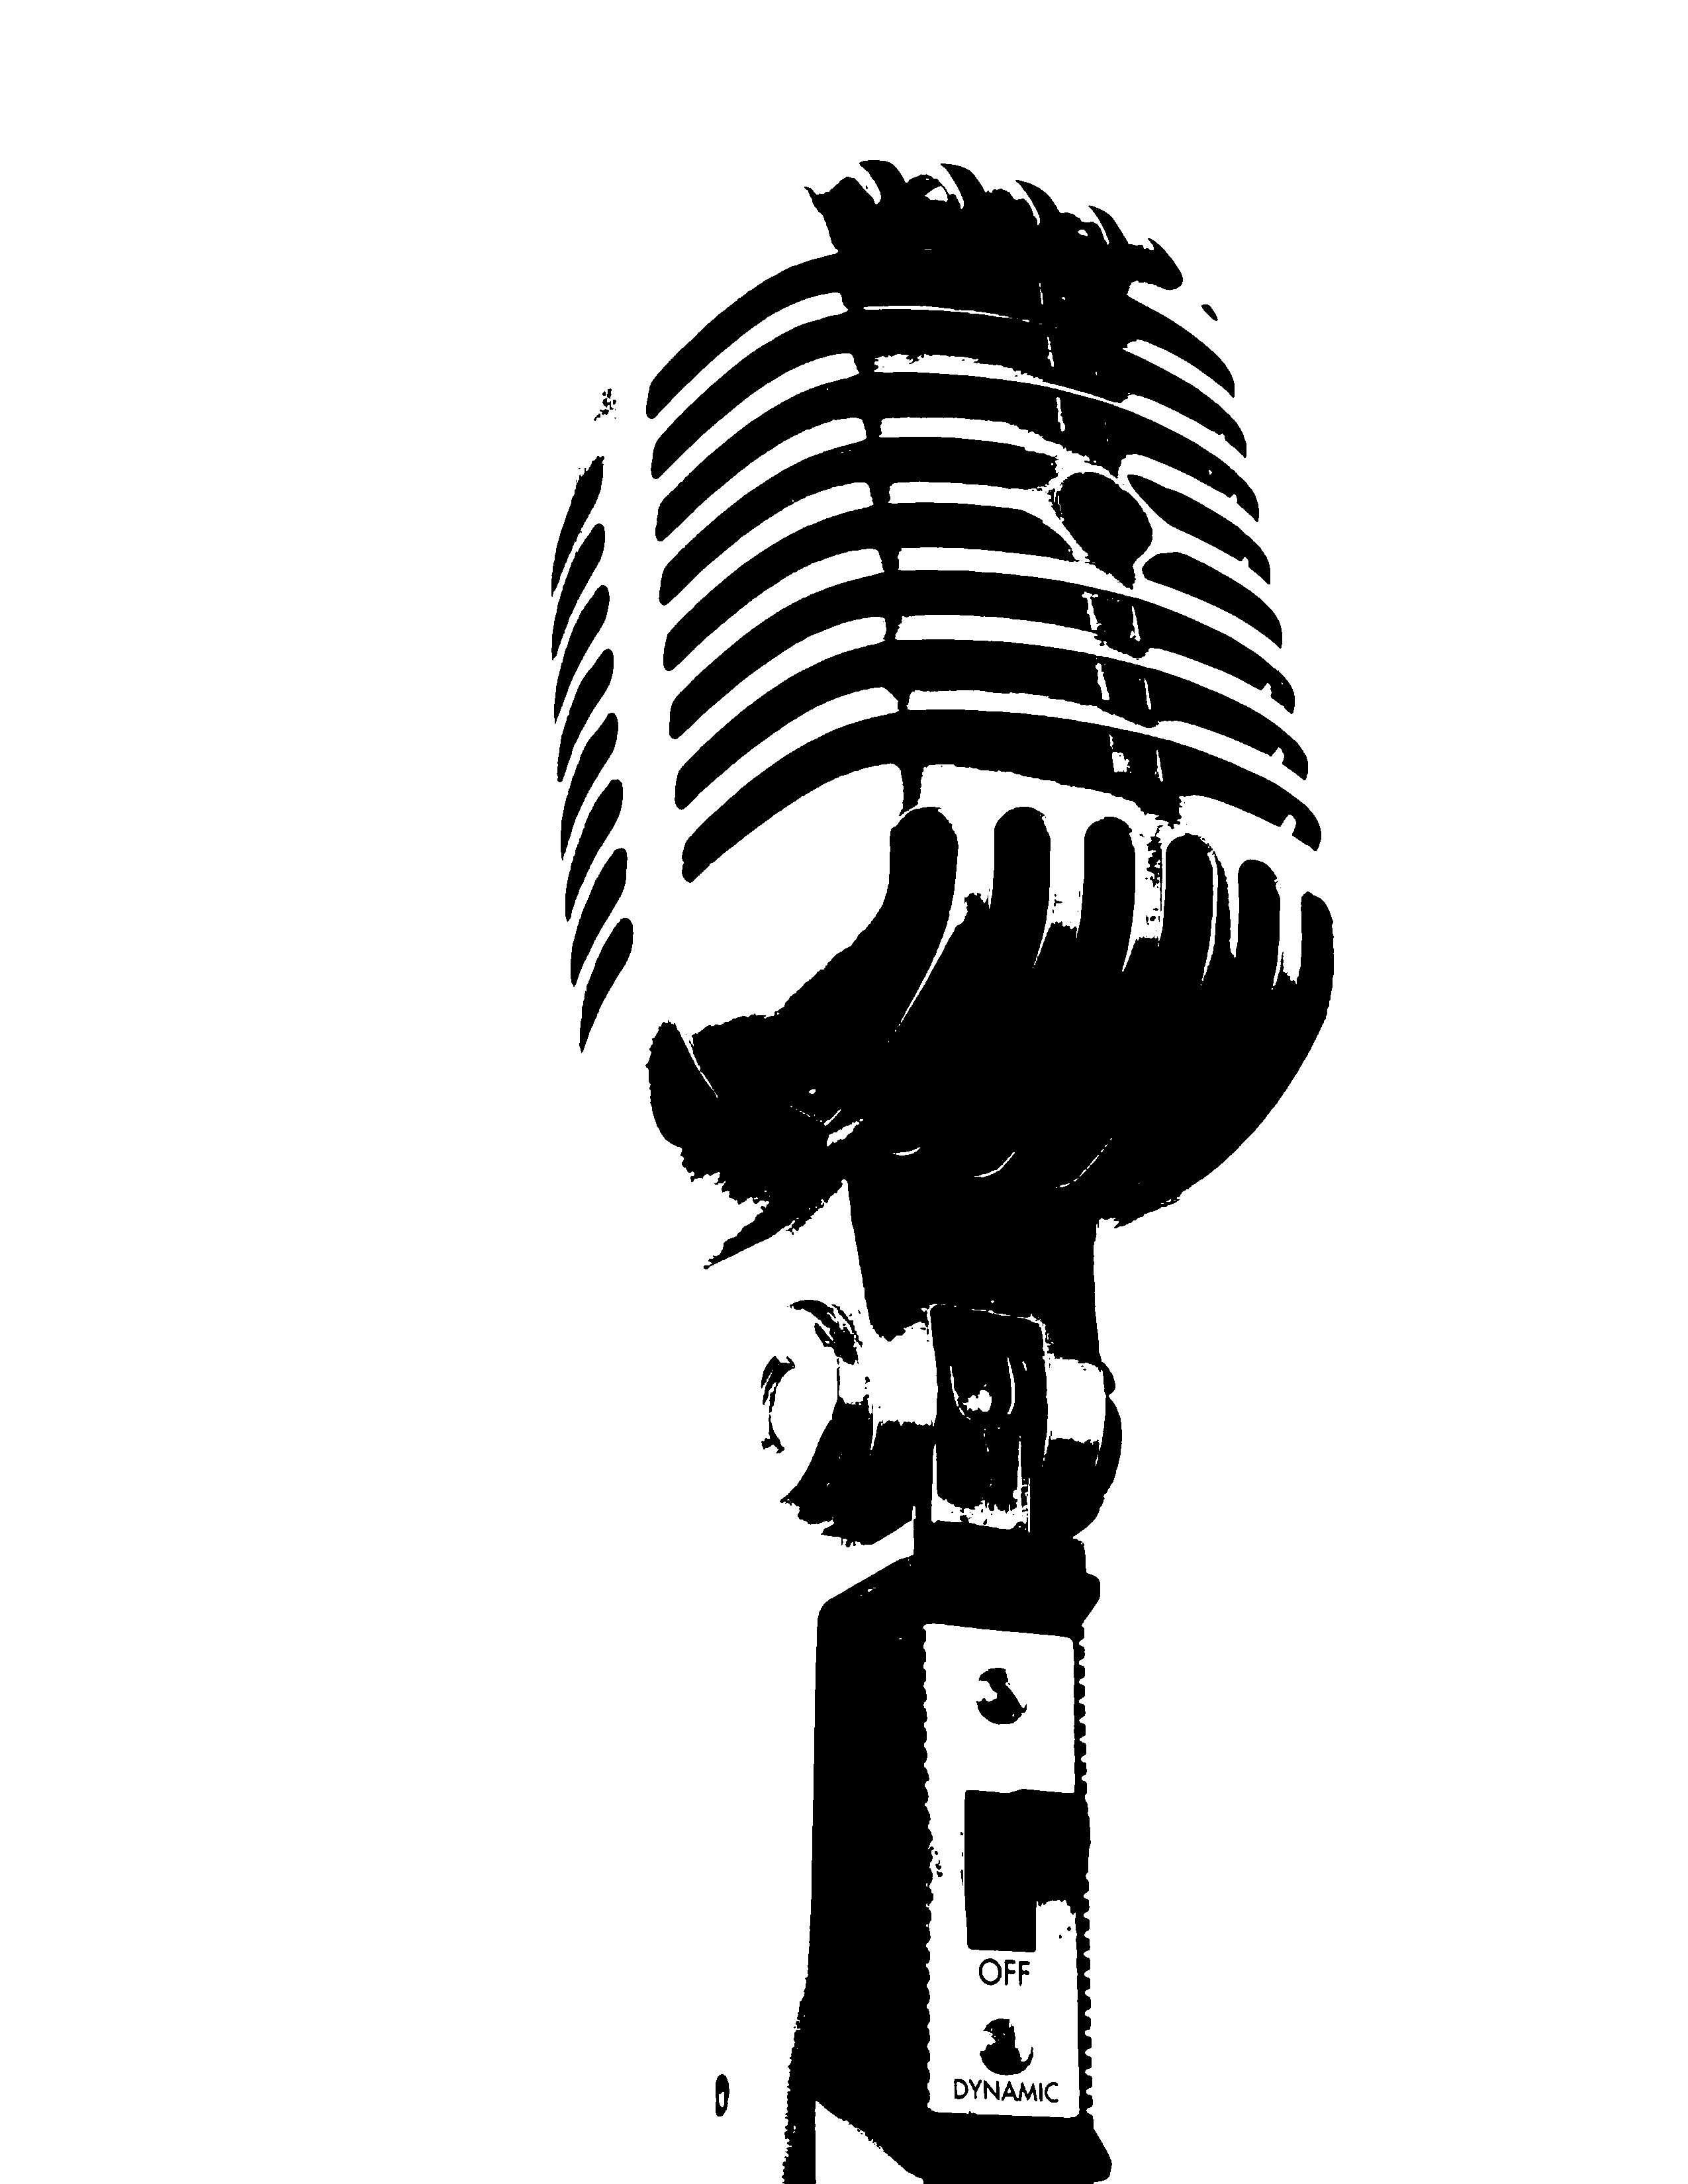 O Vocal Microphone Shure 55sh Series Ii Cool Microphone Vintage Microphone Mic Microphone Vintage Microphone Black And White Drawing